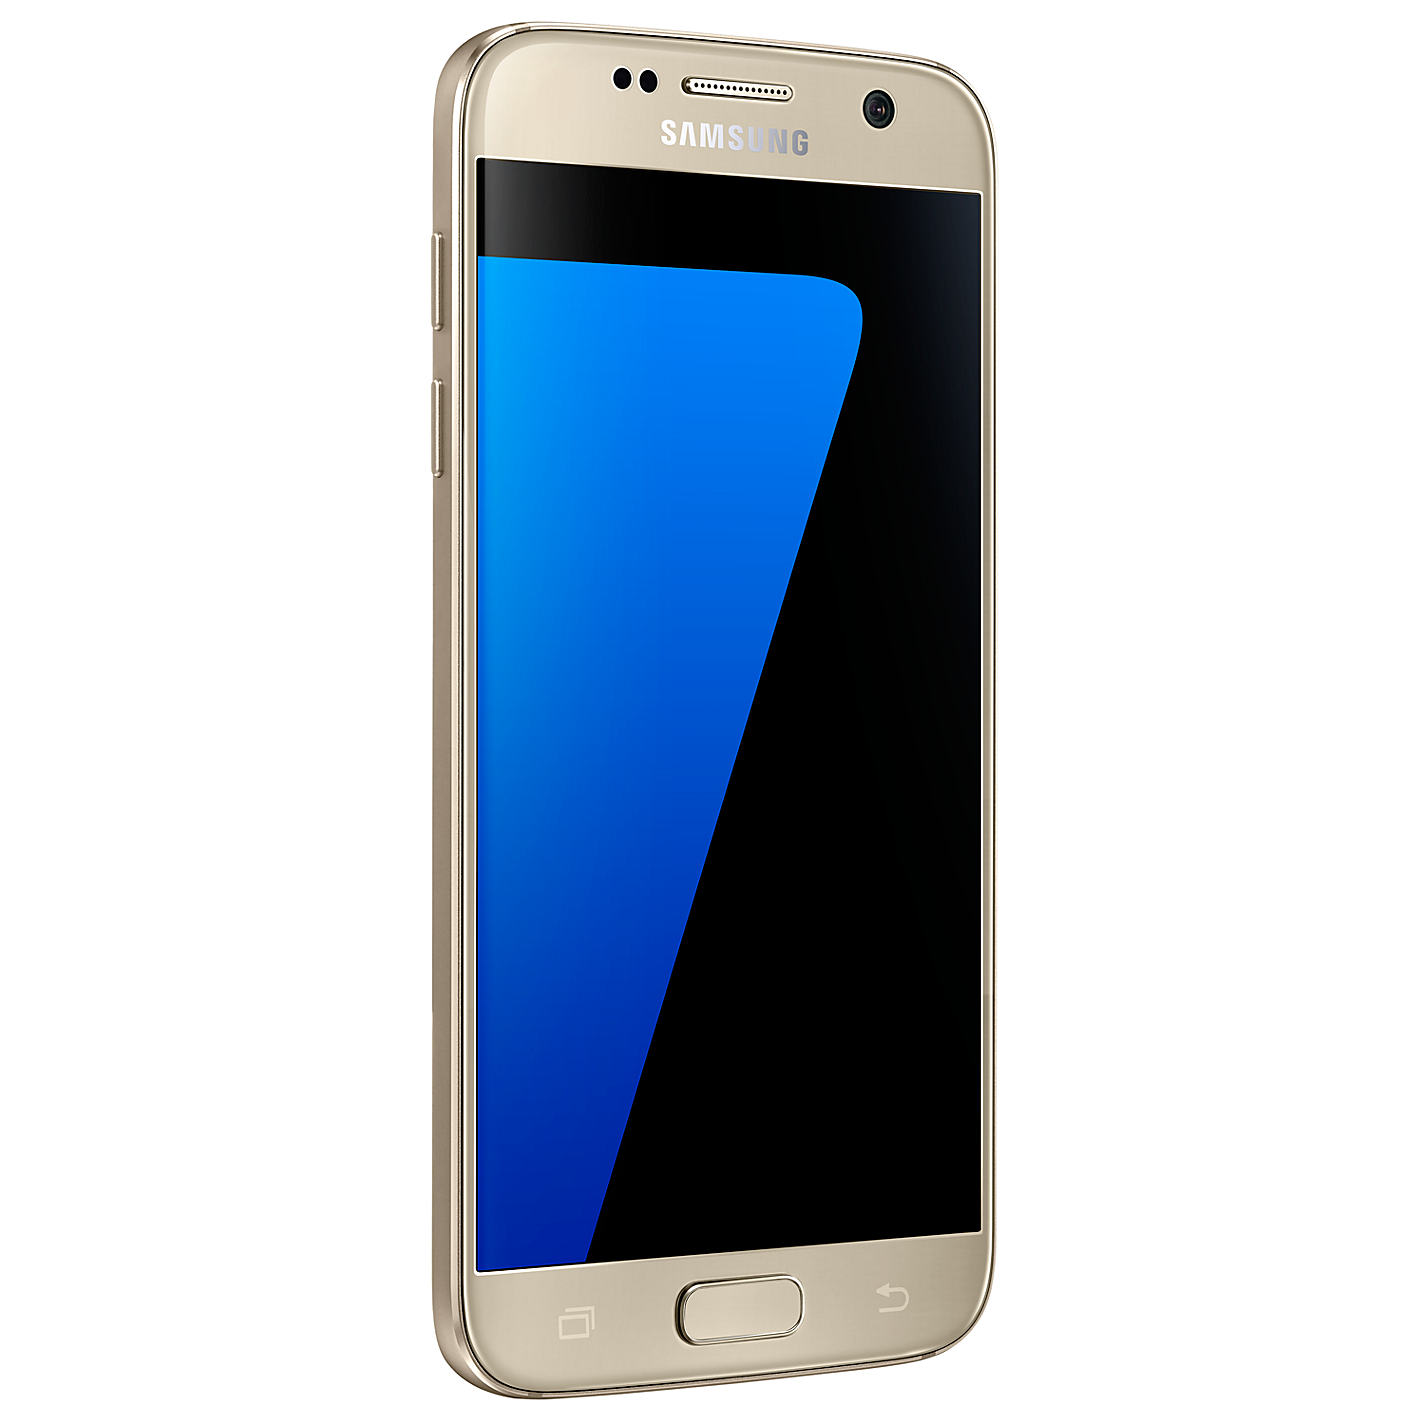 Buy samsung galaxy s7 smartphone android 51 4g lte sim free buy samsung galaxy s7 smartphone android 51 4g lte sim free sciox Image collections